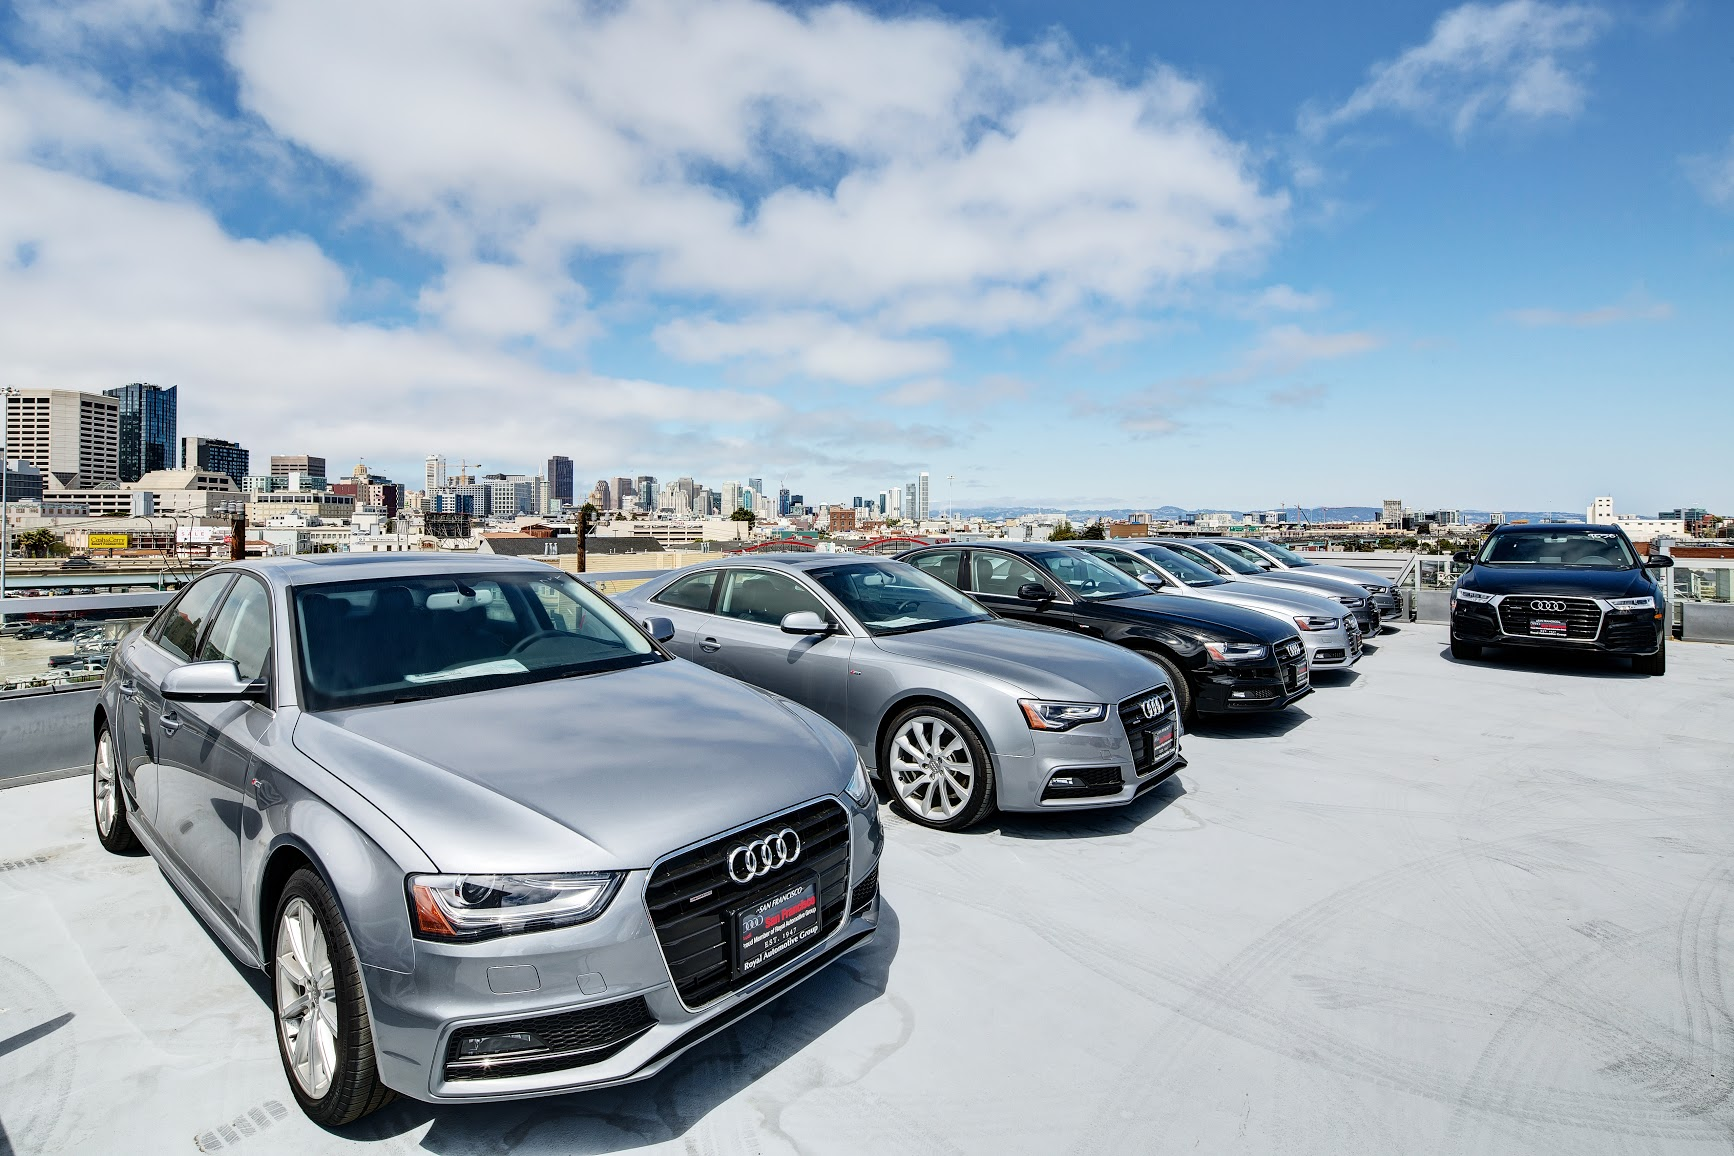 Audi San Francisco New Audi Dealership In San Francisco CA - Audi san francisco service